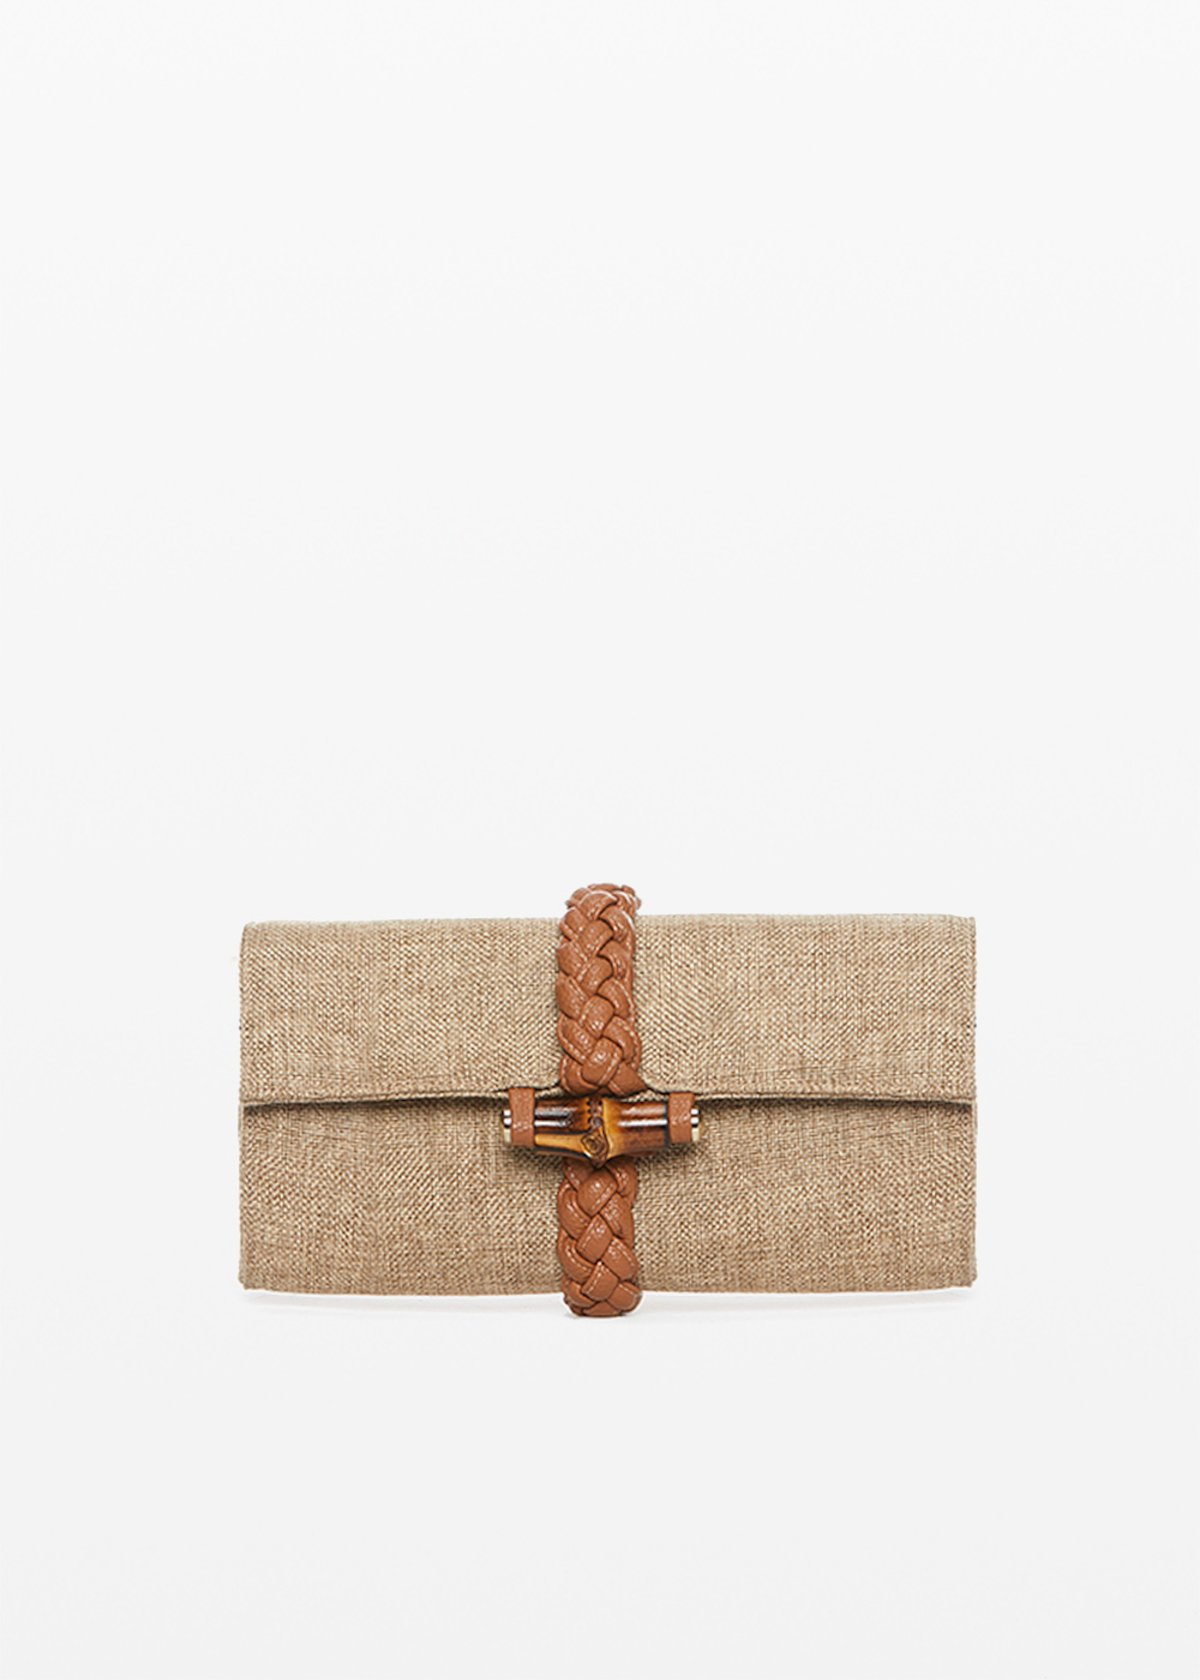 Bard clutch with faux leather braided detail